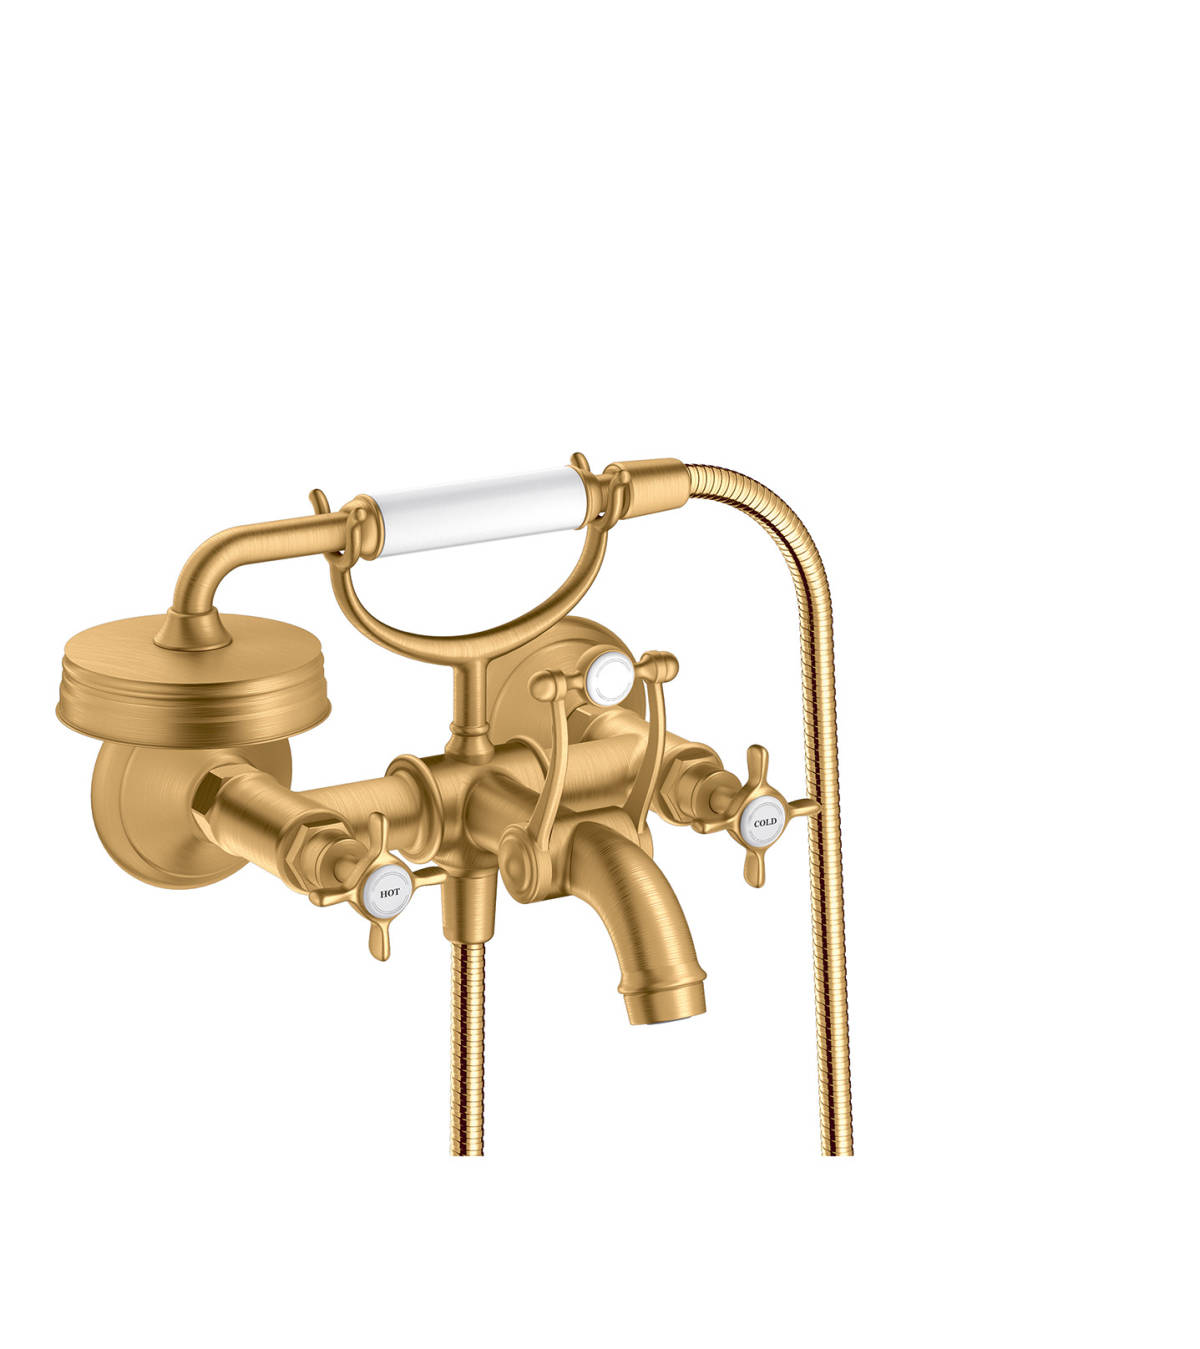 2-handle bath mixer for exposed installation with cross handles, Brushed Brass, 16540950